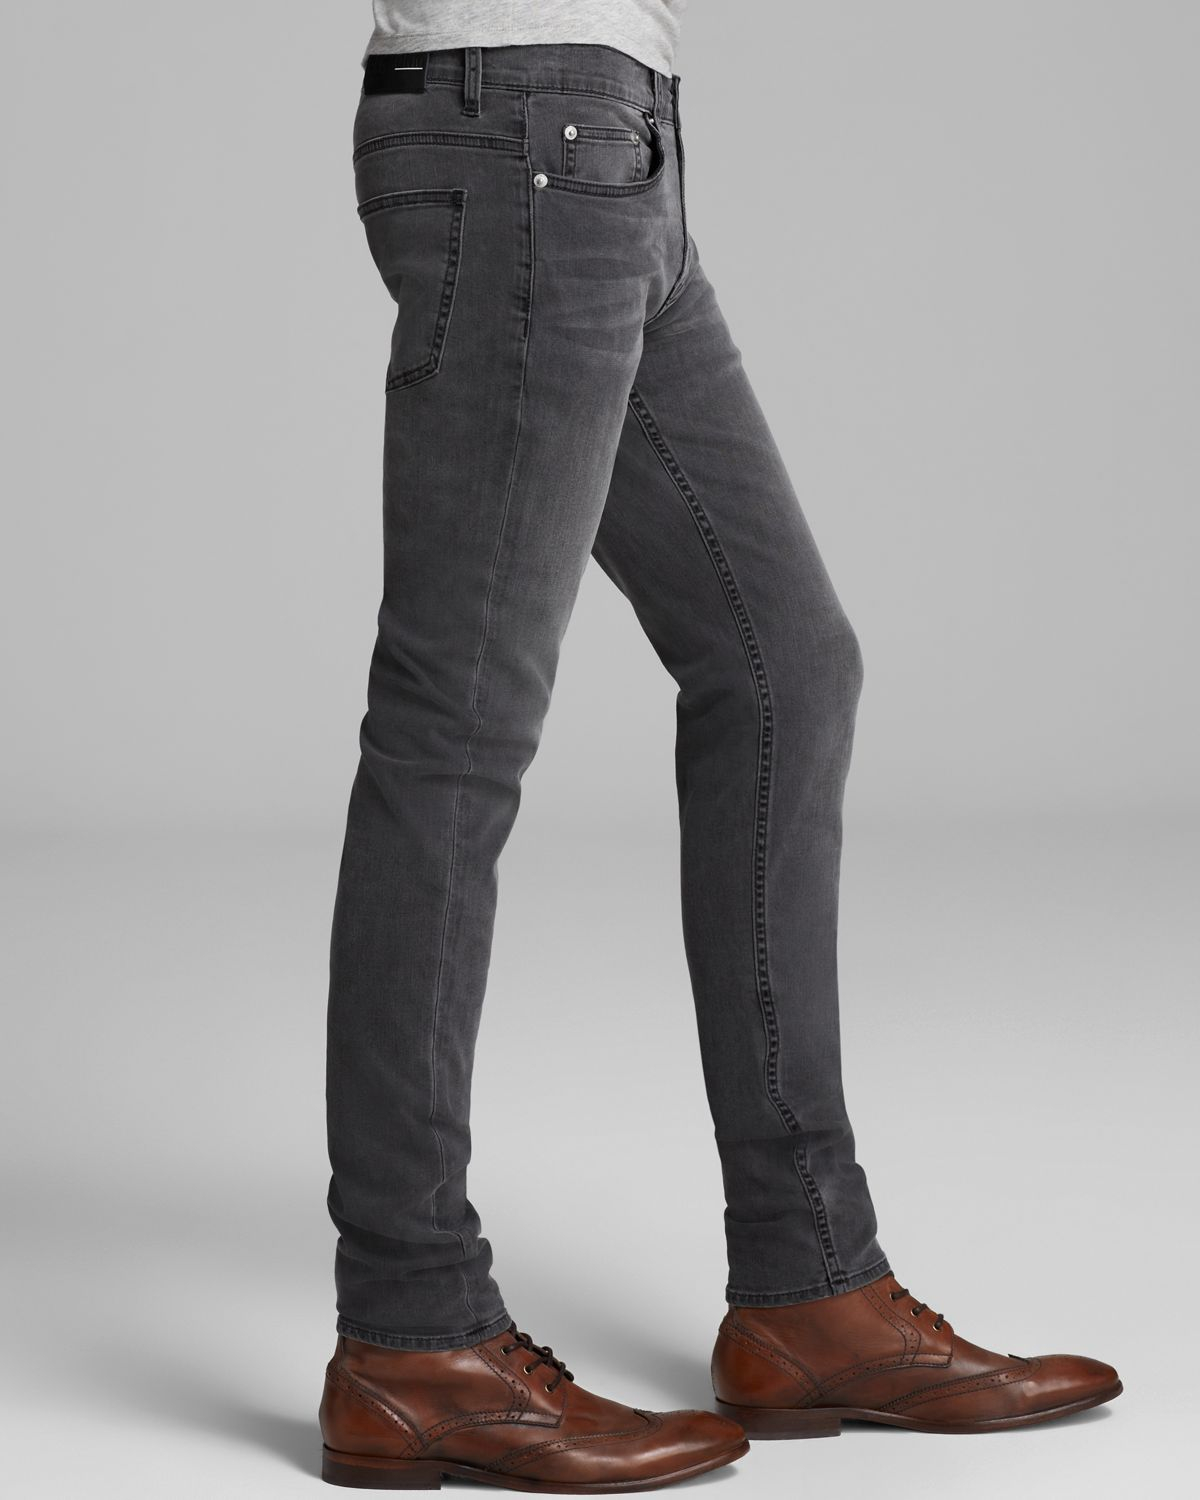 lyst  blk dnm jeans slim fit in classic wash grey in gray